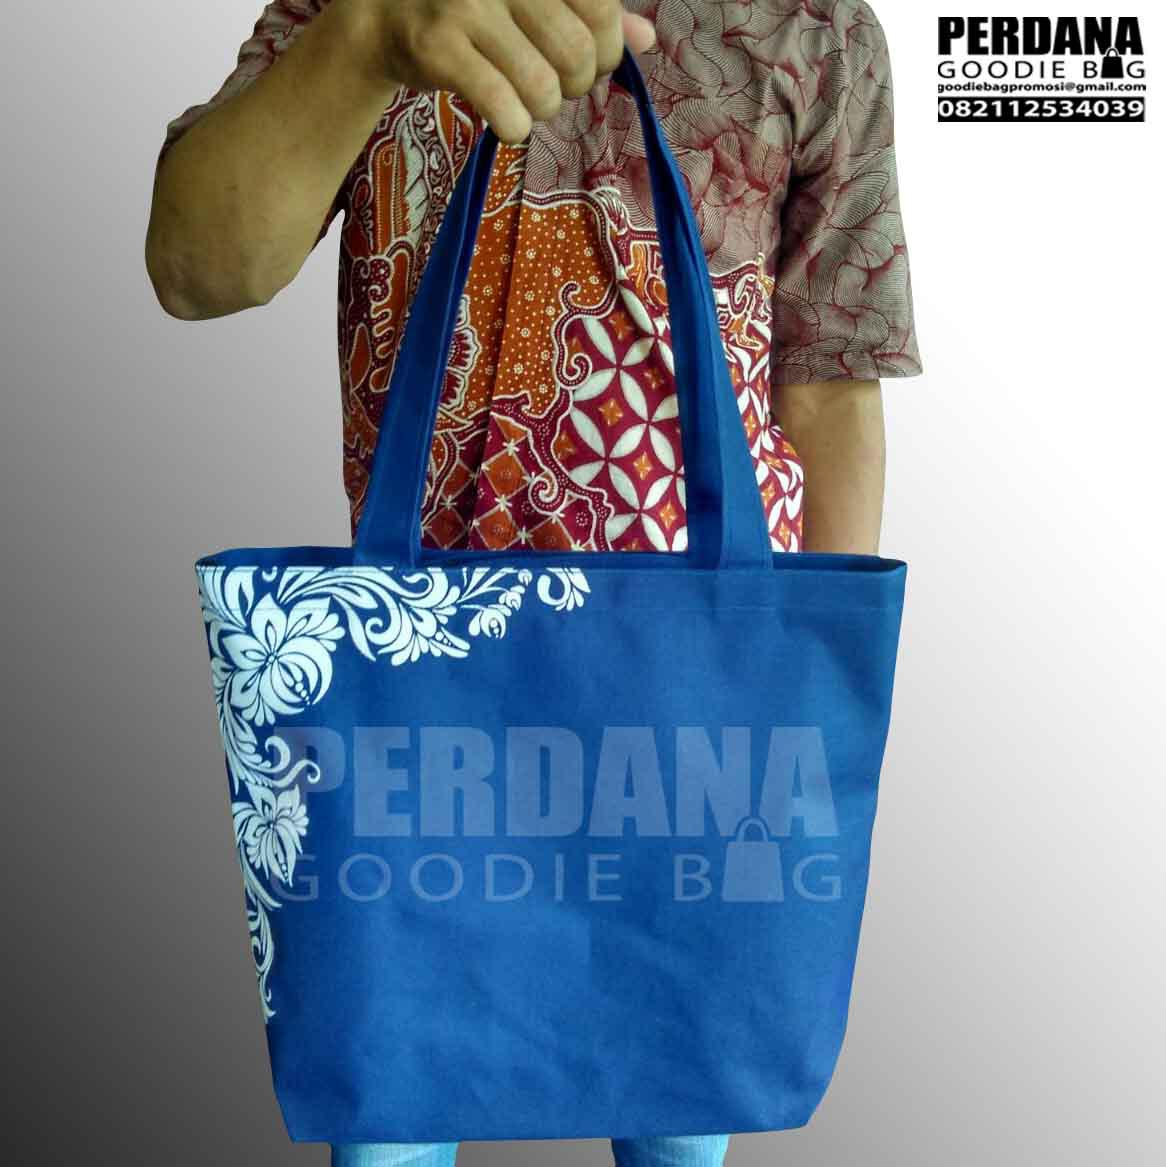 Q2871 goodie bag mengenang 40hr bahan dinier + resleting